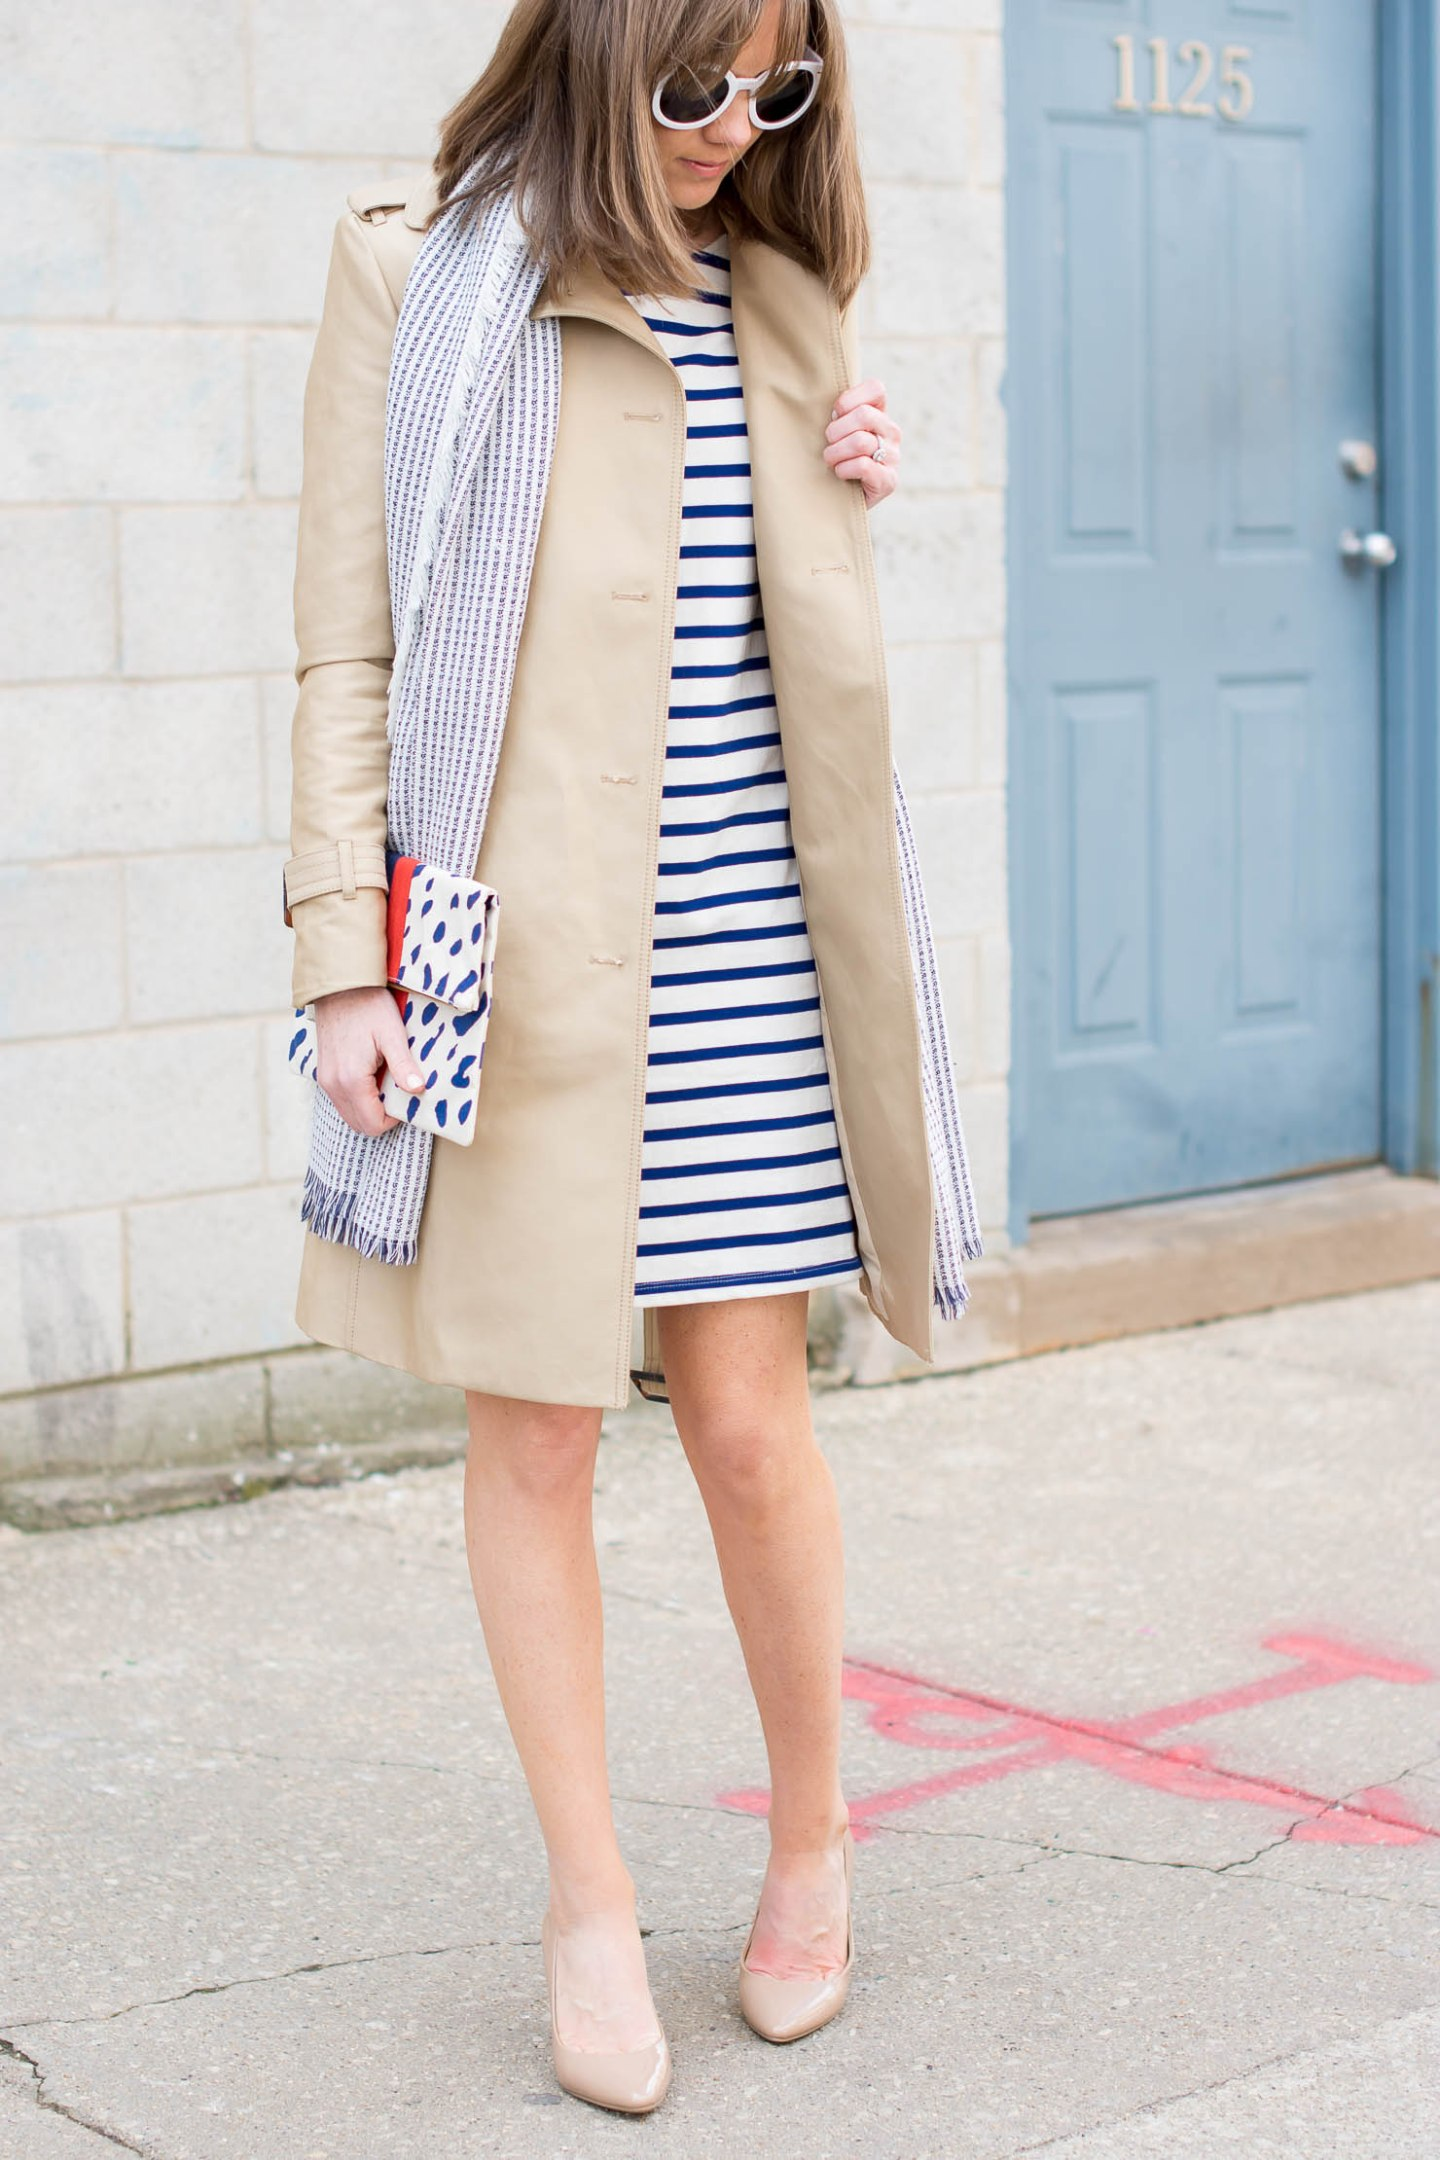 the-best-spring-trench-coats-breton-stripes-round-white-sunglasses-the-best-clutch-bag-spring-outfit-most-versatile-jacket